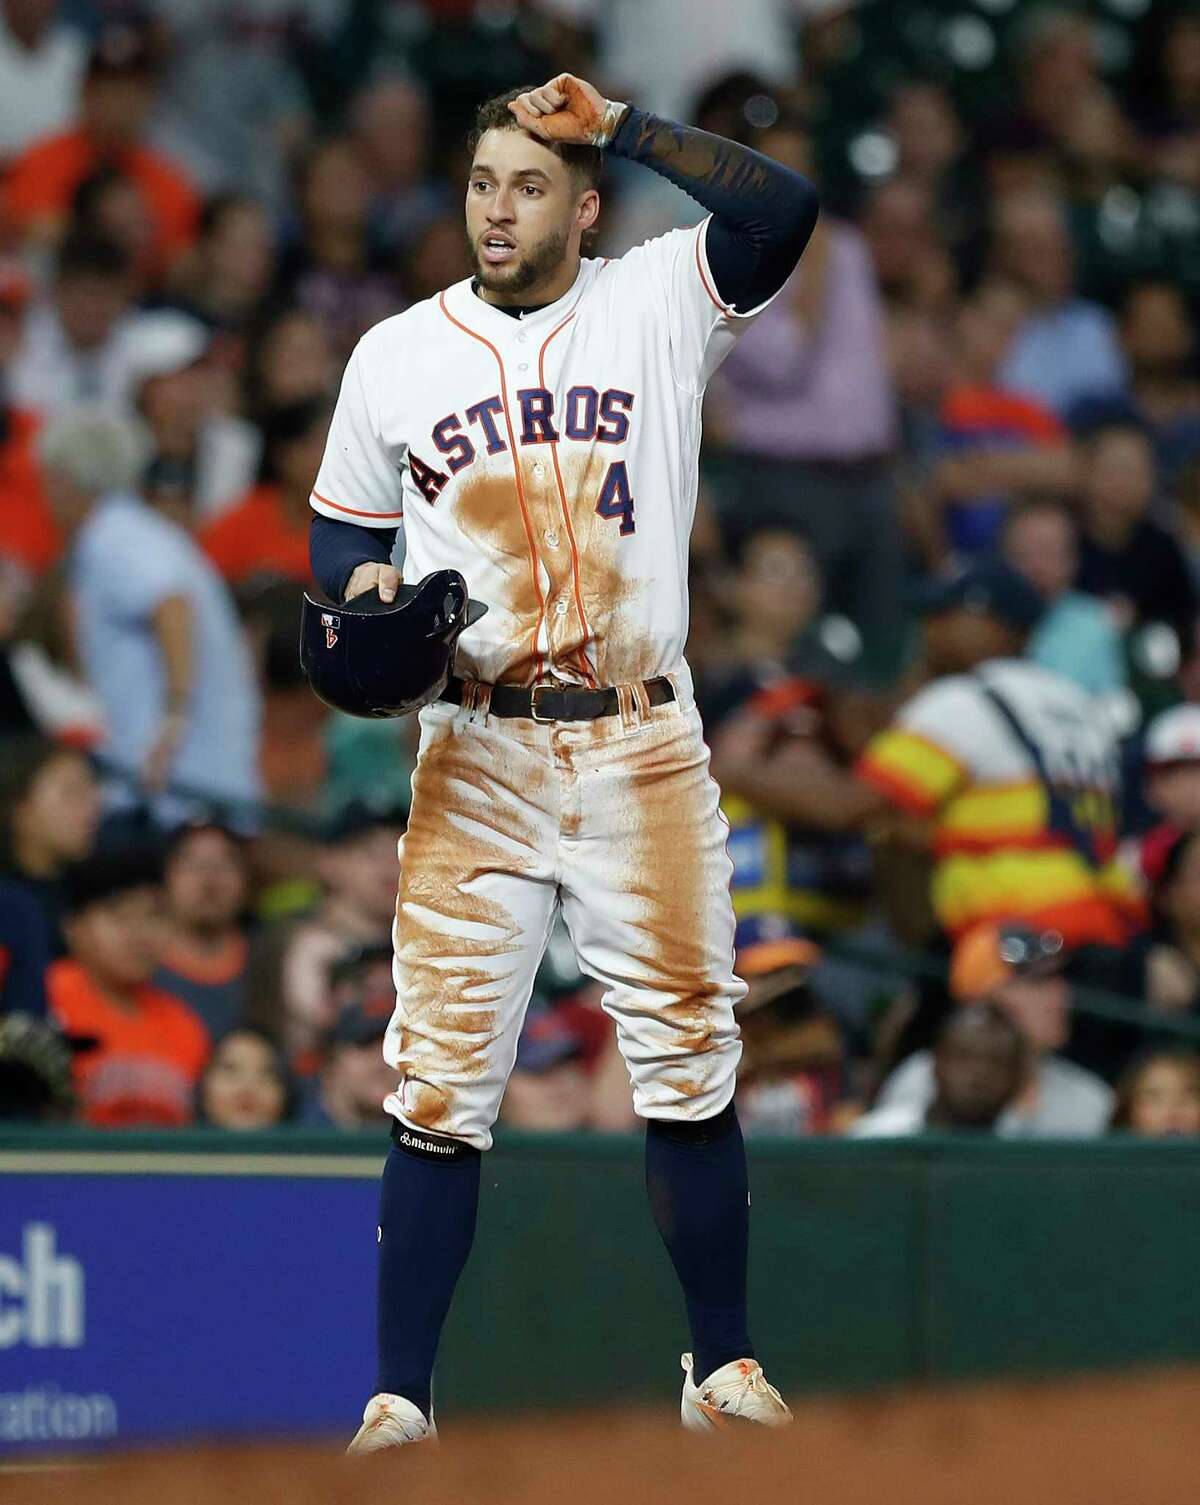 Houston Astros George Springer (4) reacts after he was caught stealing third base during the fourth inning of an MLB baseball game at Minute Maid Park, Tuesday, July, 18, 2017.